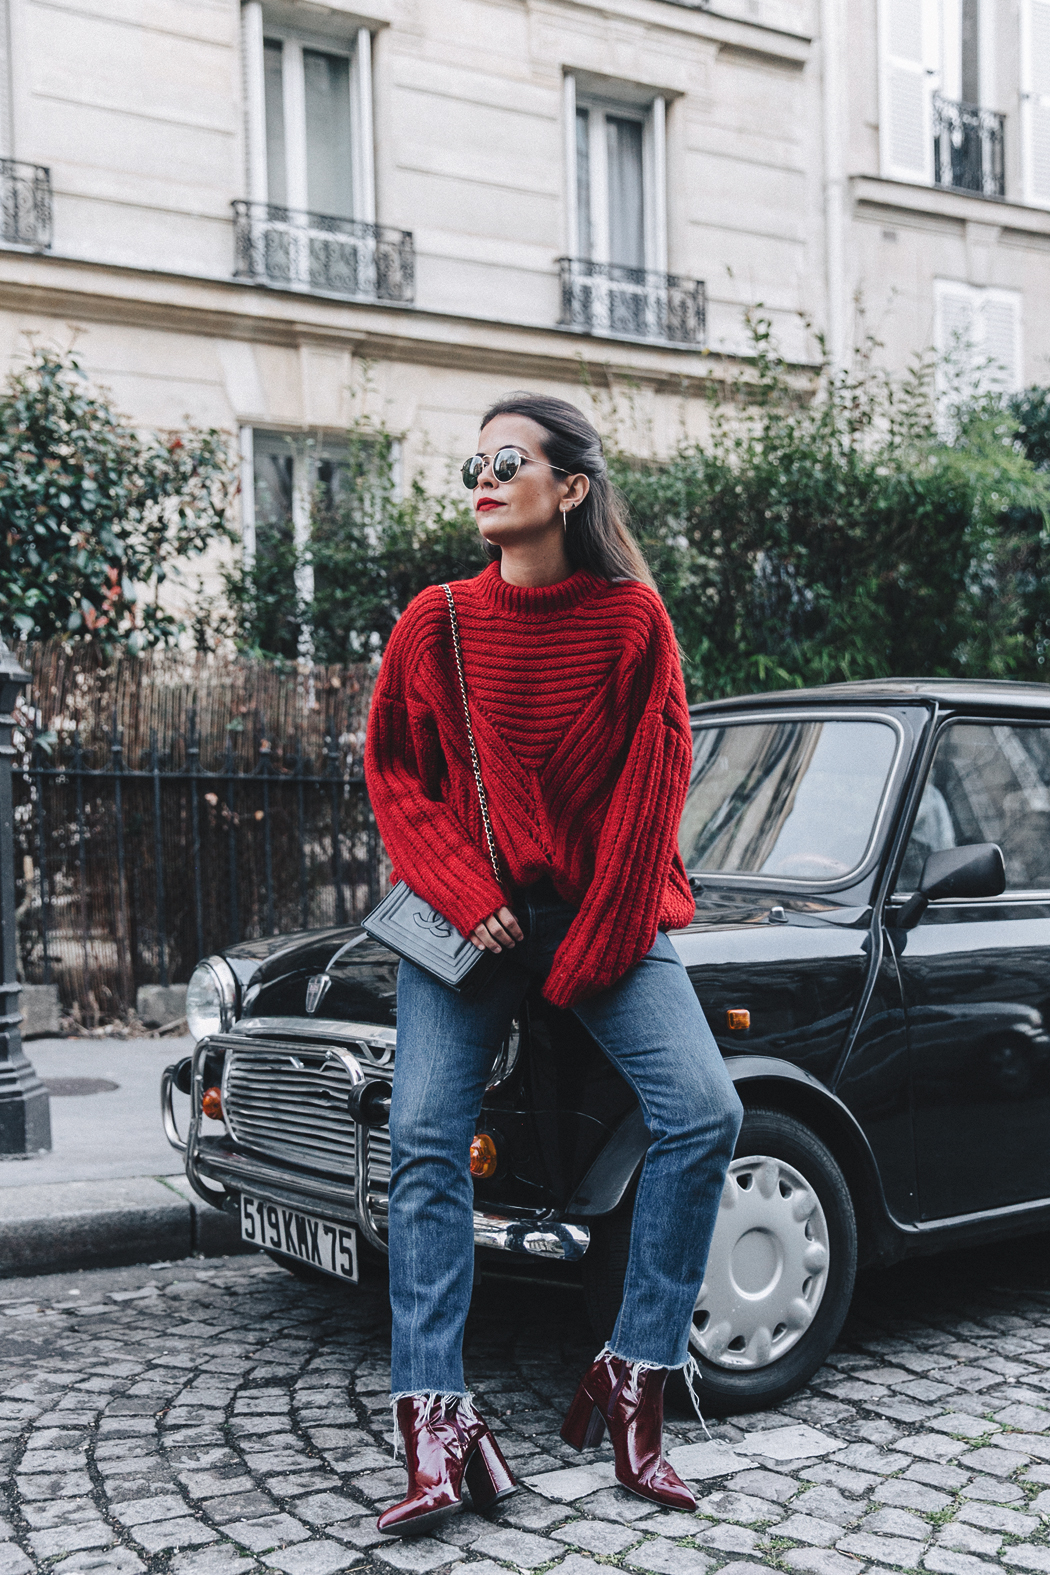 RED-KNITWEAR-Levis-Jeans-Red_Boots-Outfit-Street_Style-Levis_Vintage-30